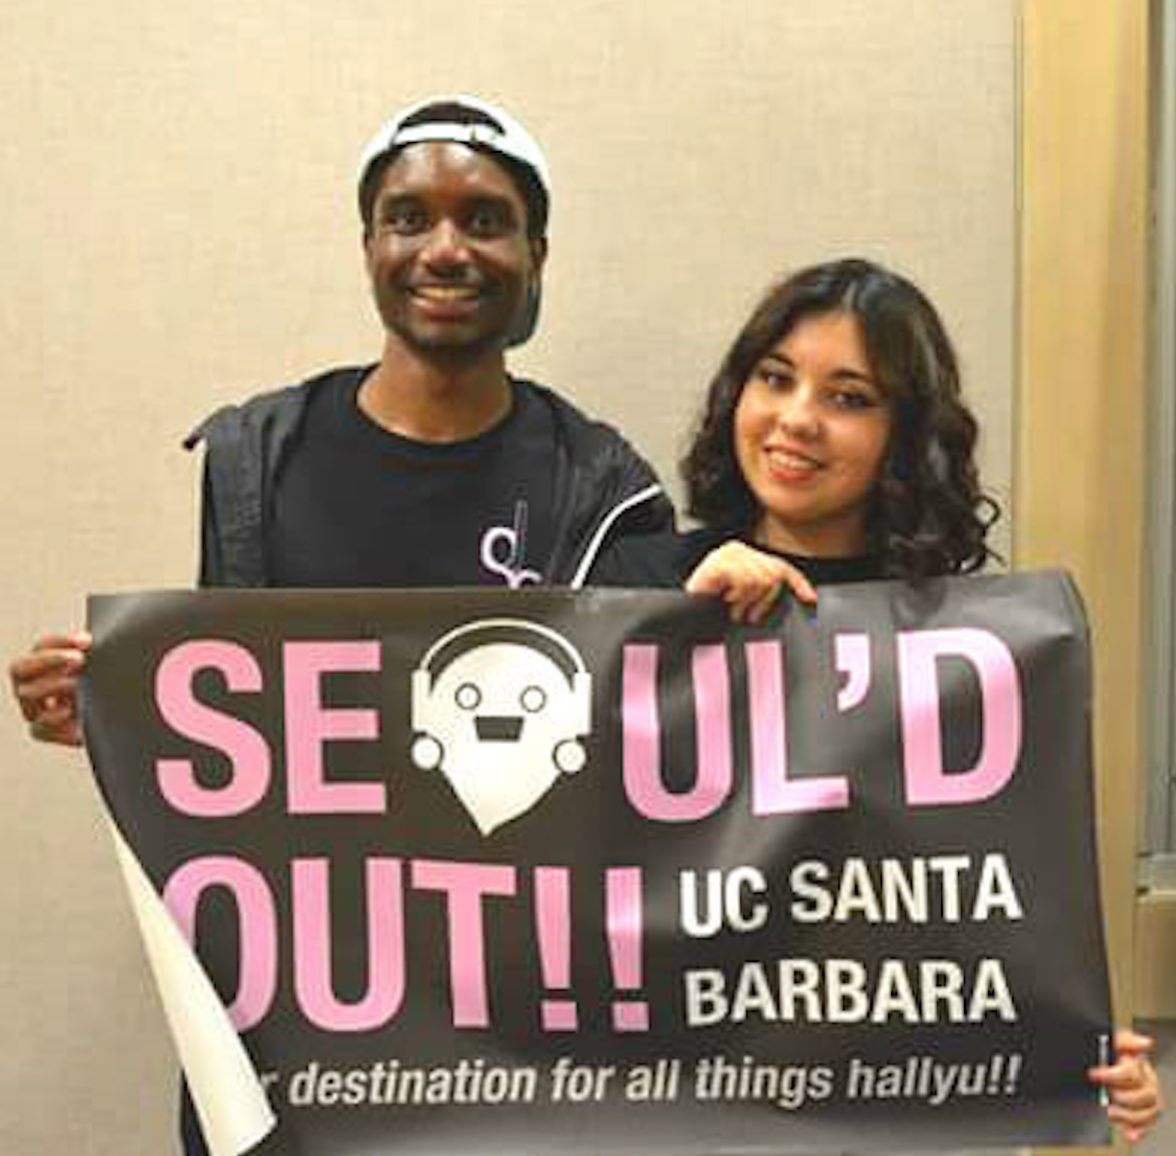 Co-Presidents of Seoul'd Out, Devin Clark and Samantha Mejia, pose together with the club's banner. (Photo courtesy of Seoul'd Out).